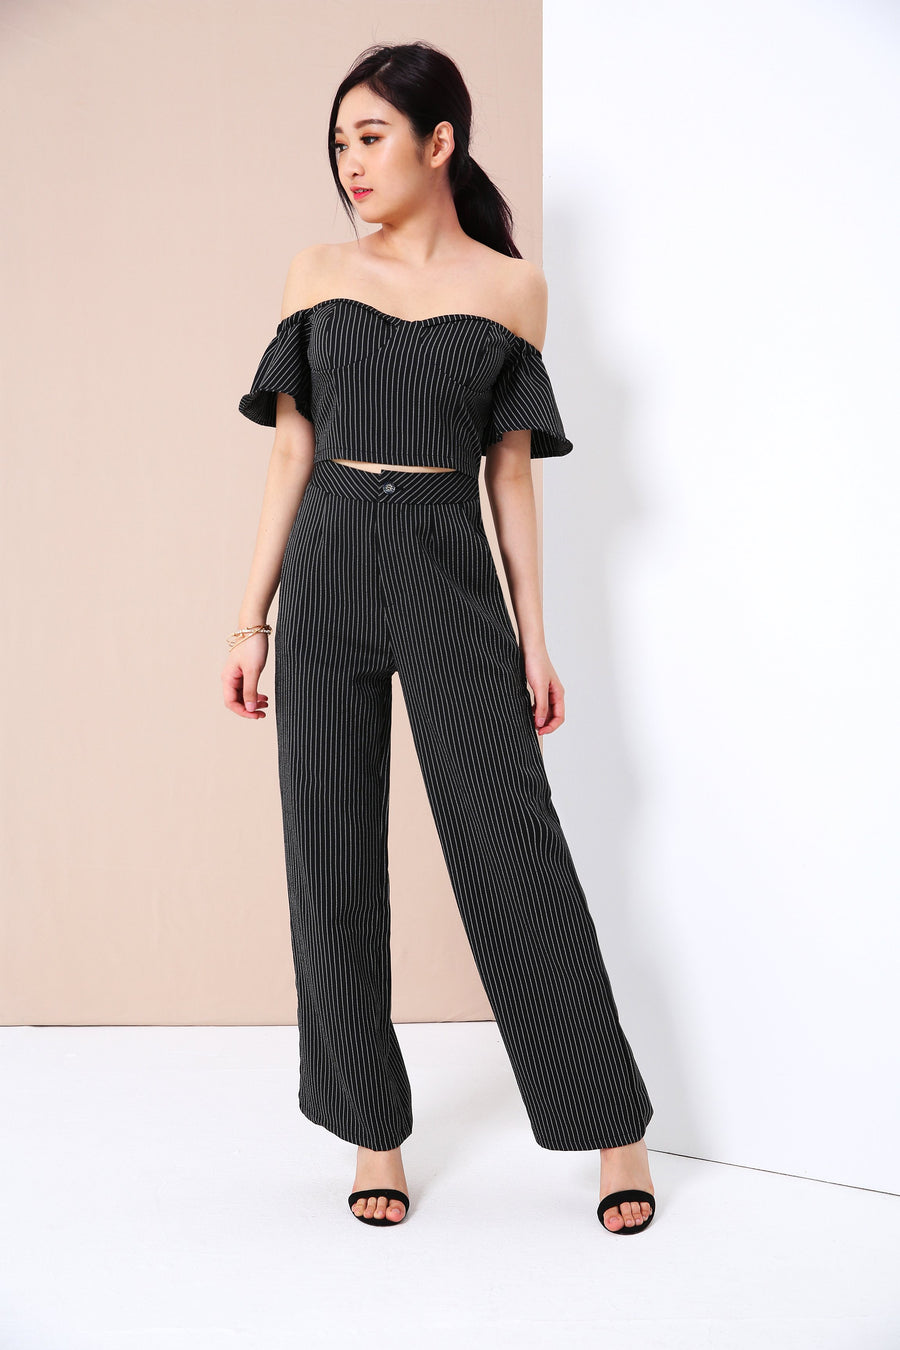 Striped Bustier Top with Wide Leg Pants Set 3394 - ample-couture